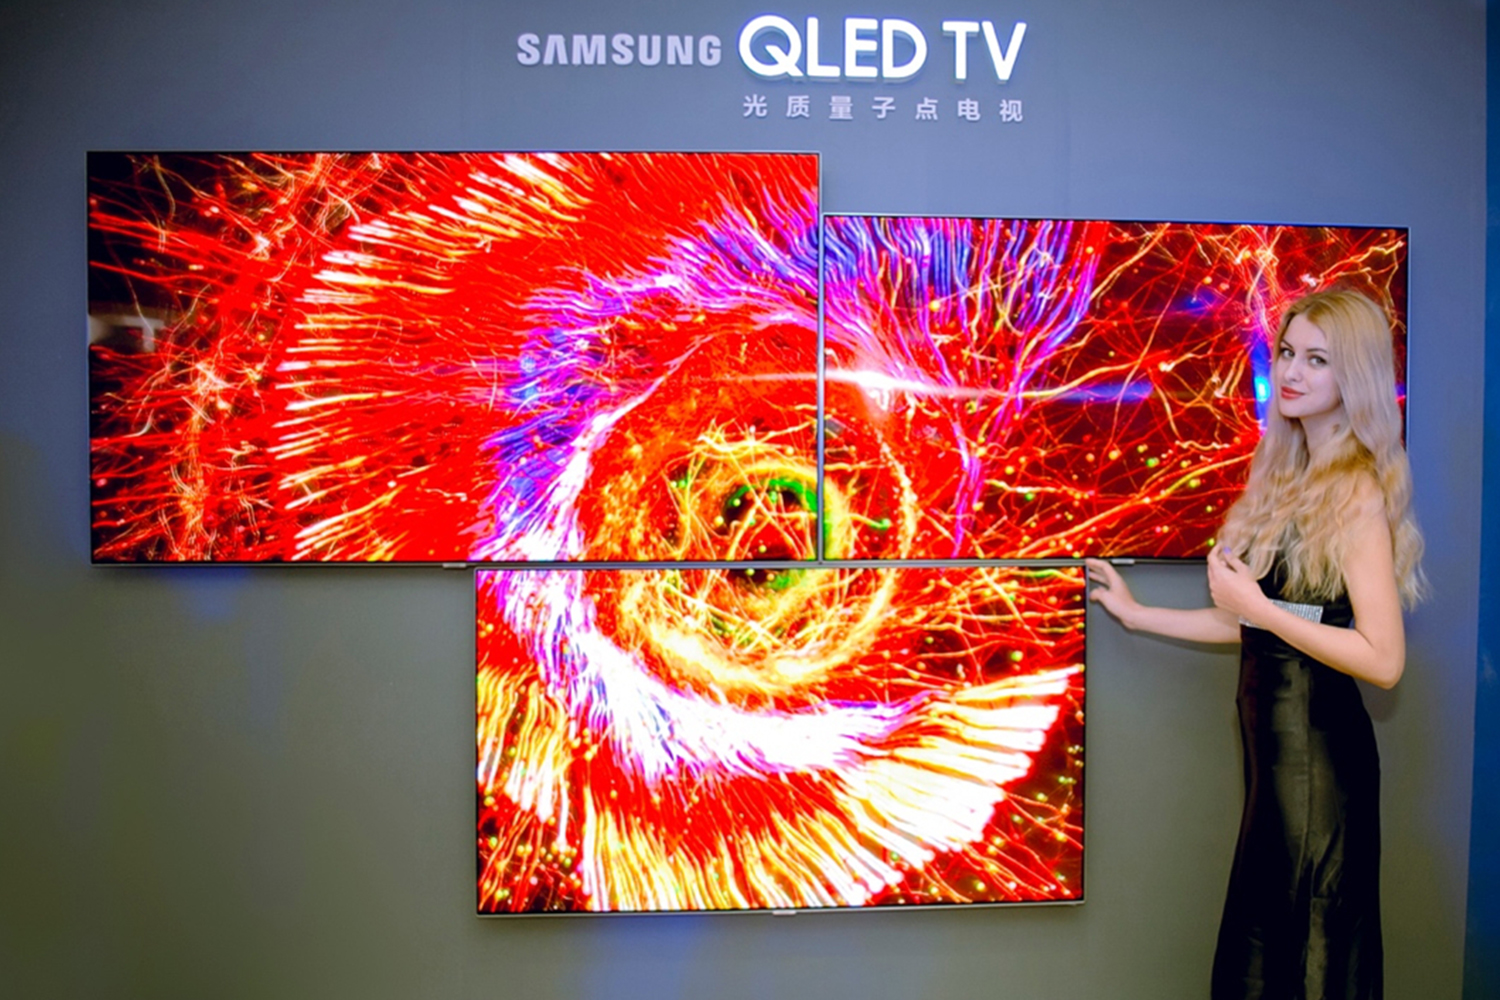 Samsung Forges Alliance With Rivals To Bolster Qled